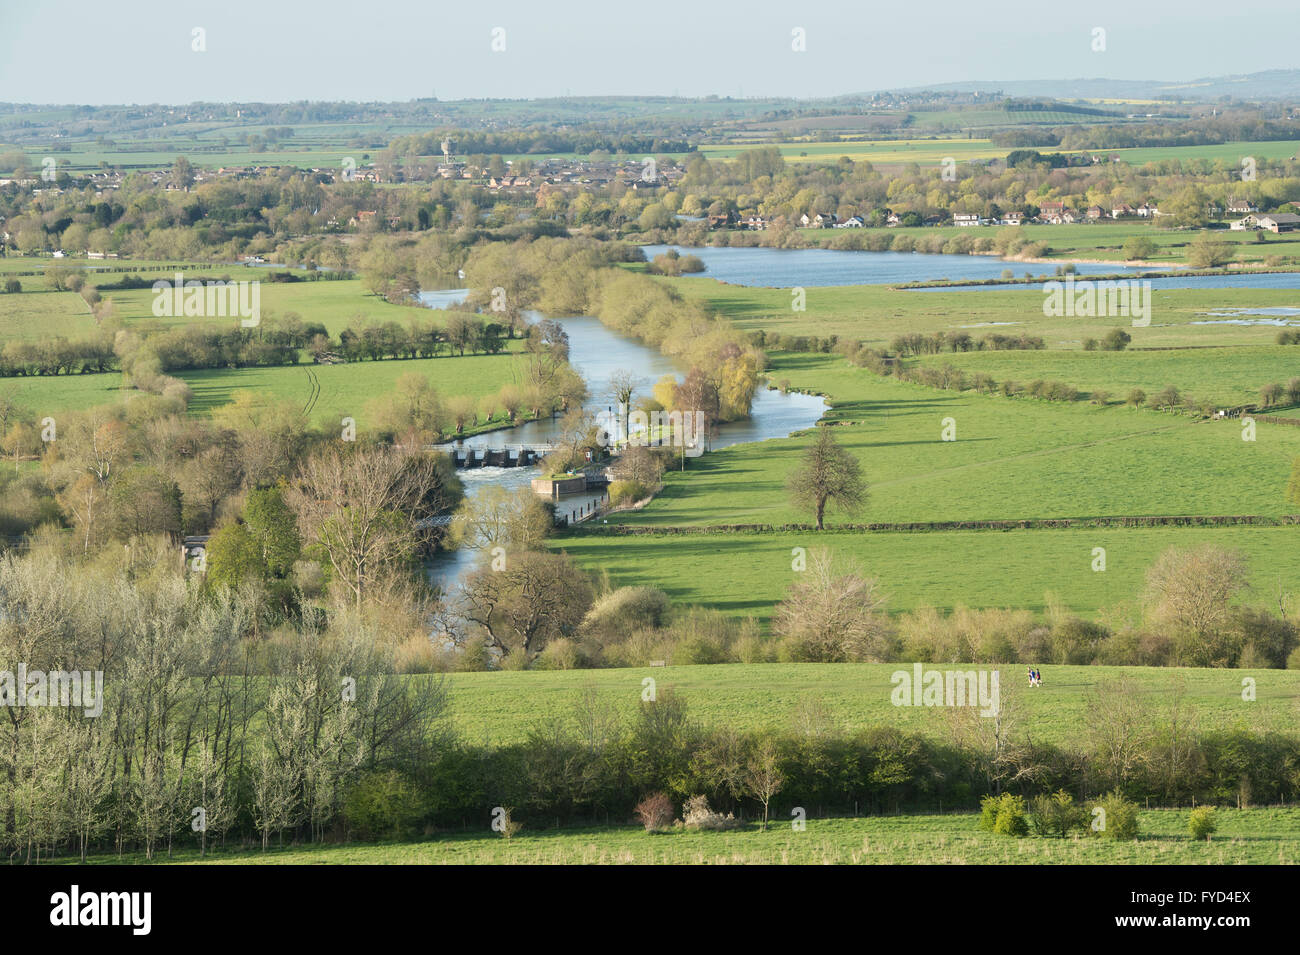 Looking over Day's Lock on the River Thames from Round Hill, Wittenham Clumps, near Dorchester on Thames, Oxfordshire, - Stock Image